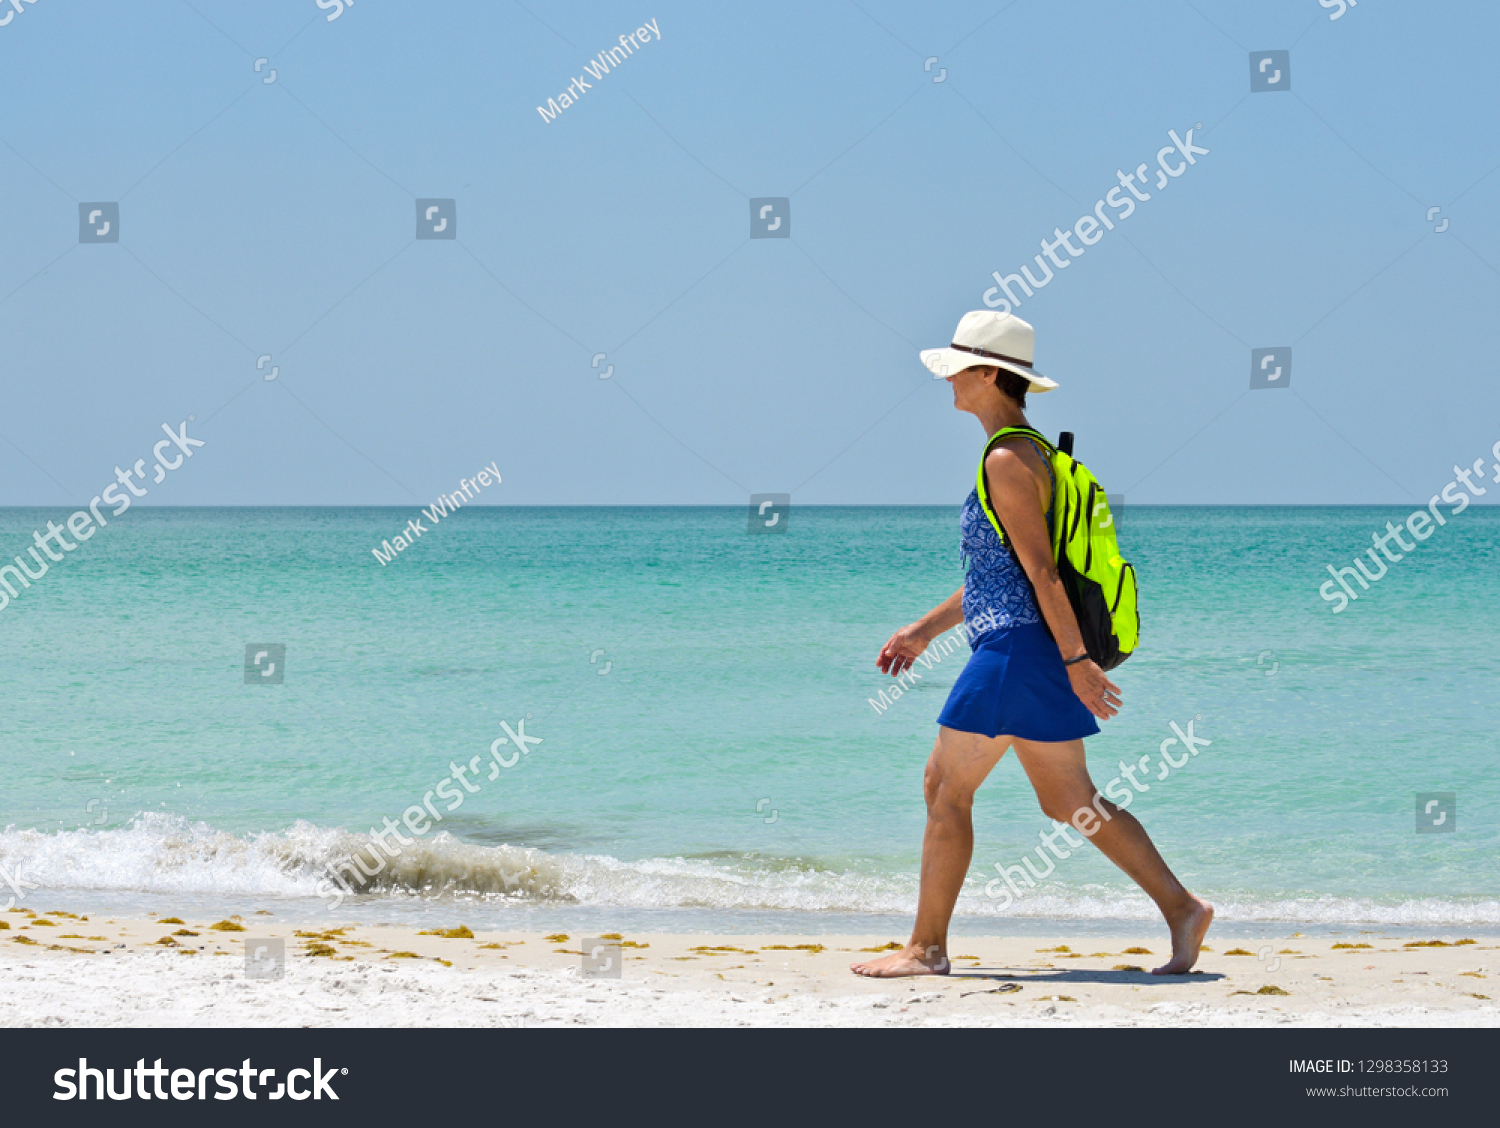 Holmes Beach, Anna Maria Island FL / USA - April 30, 2018: Mature Woman Wearing a Hat with a Backpack Walking on the Beach